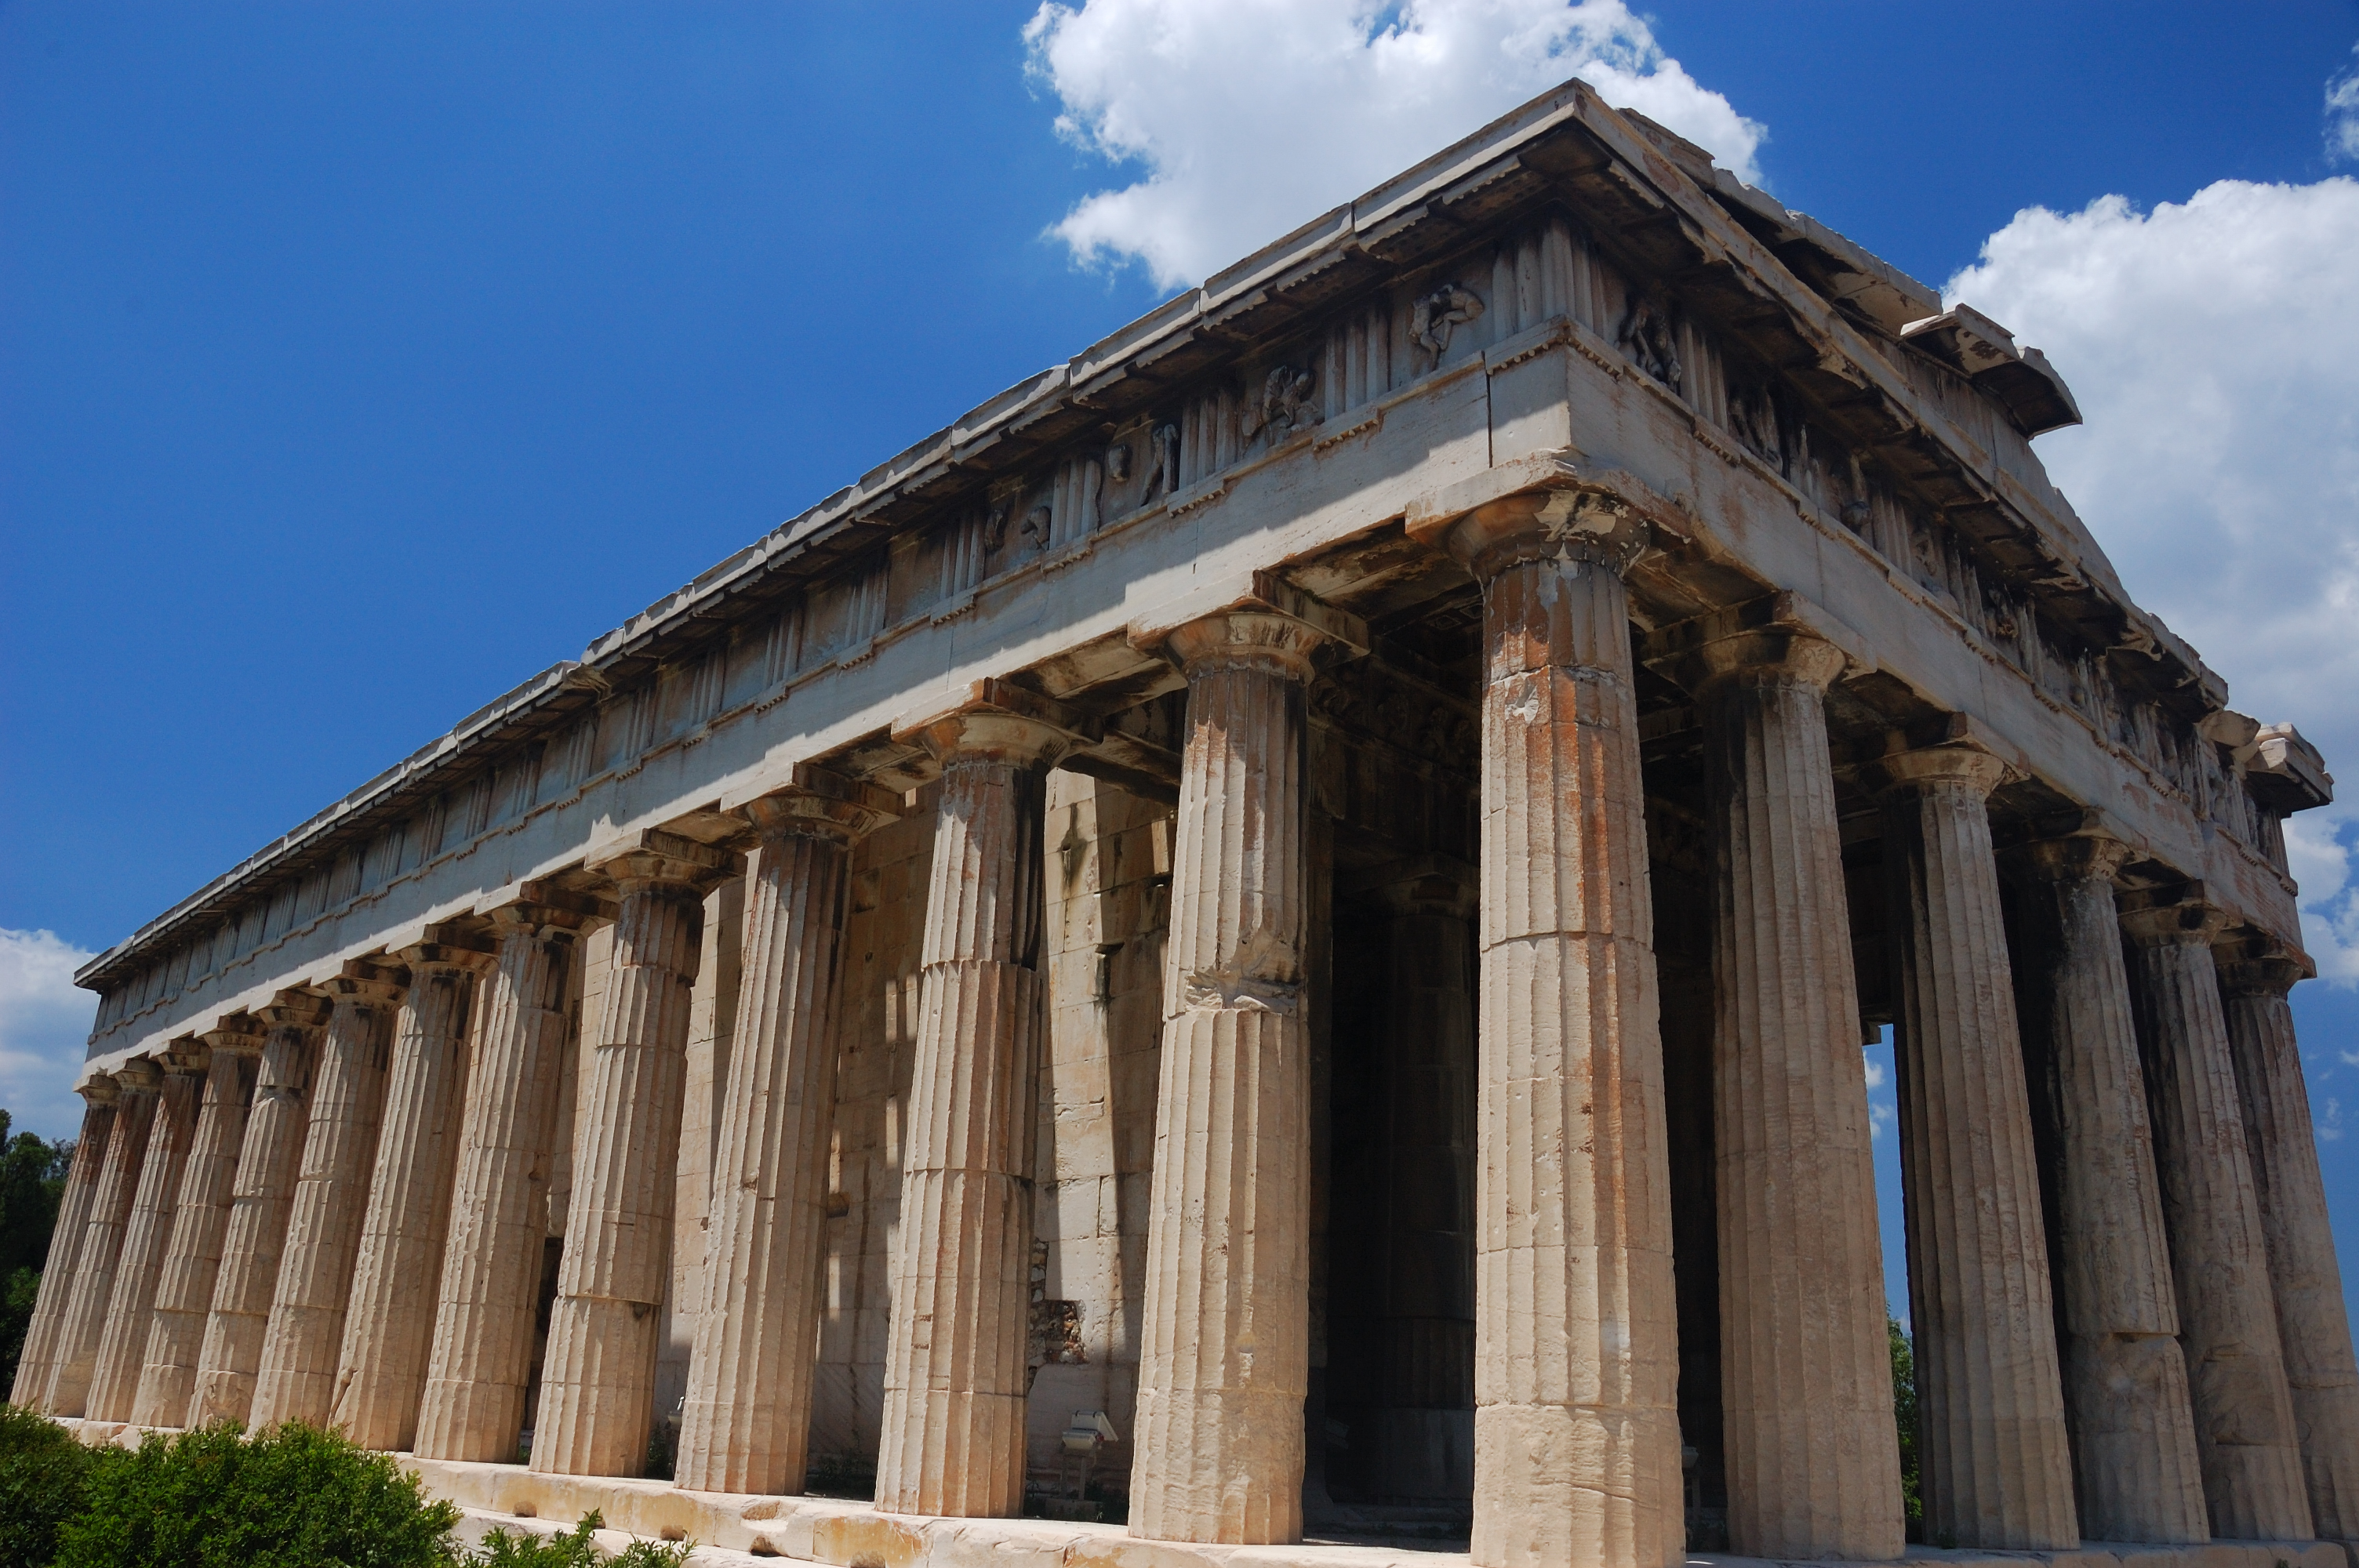 File:Temple of Hephaestus in Athens(1).jpg - Wikimedia Commons